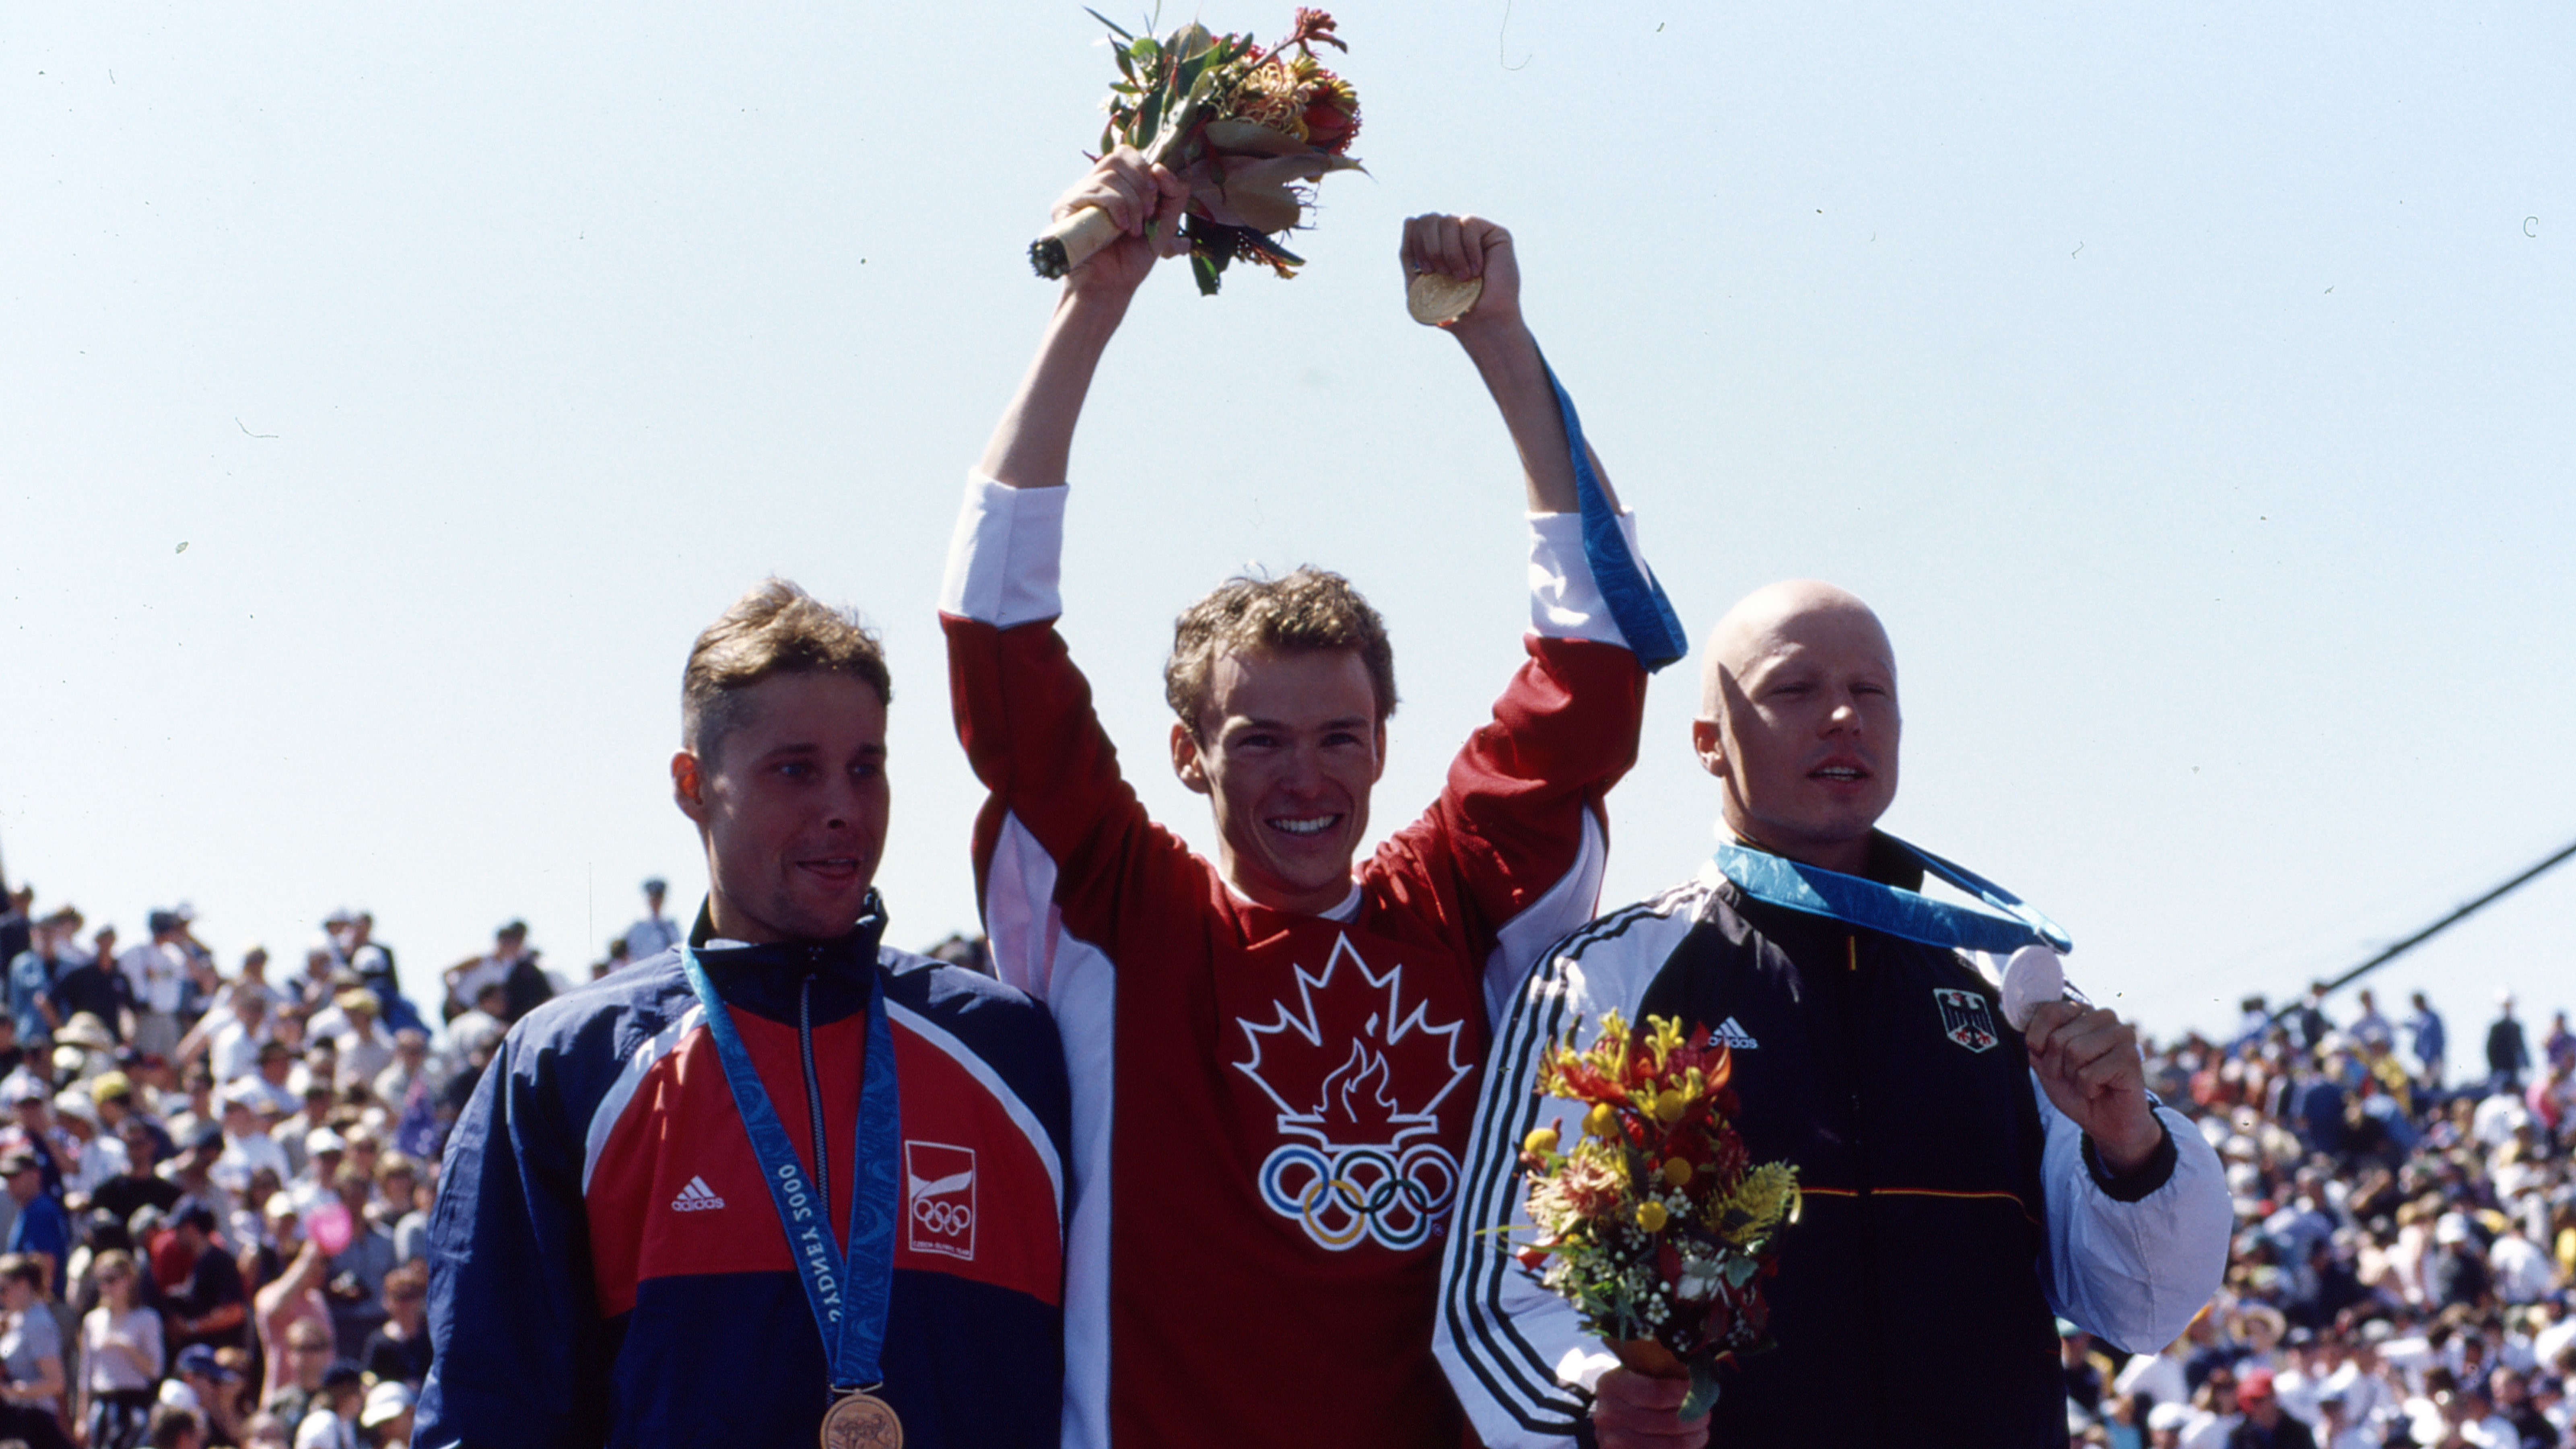 The 3 male medallists at the Sydney 2000 Olympics: Jan Rehula (CZE) - Bronze, Simon Whitfield (CAN) - Gold, Stephan Vuckovic (GER) - Silver